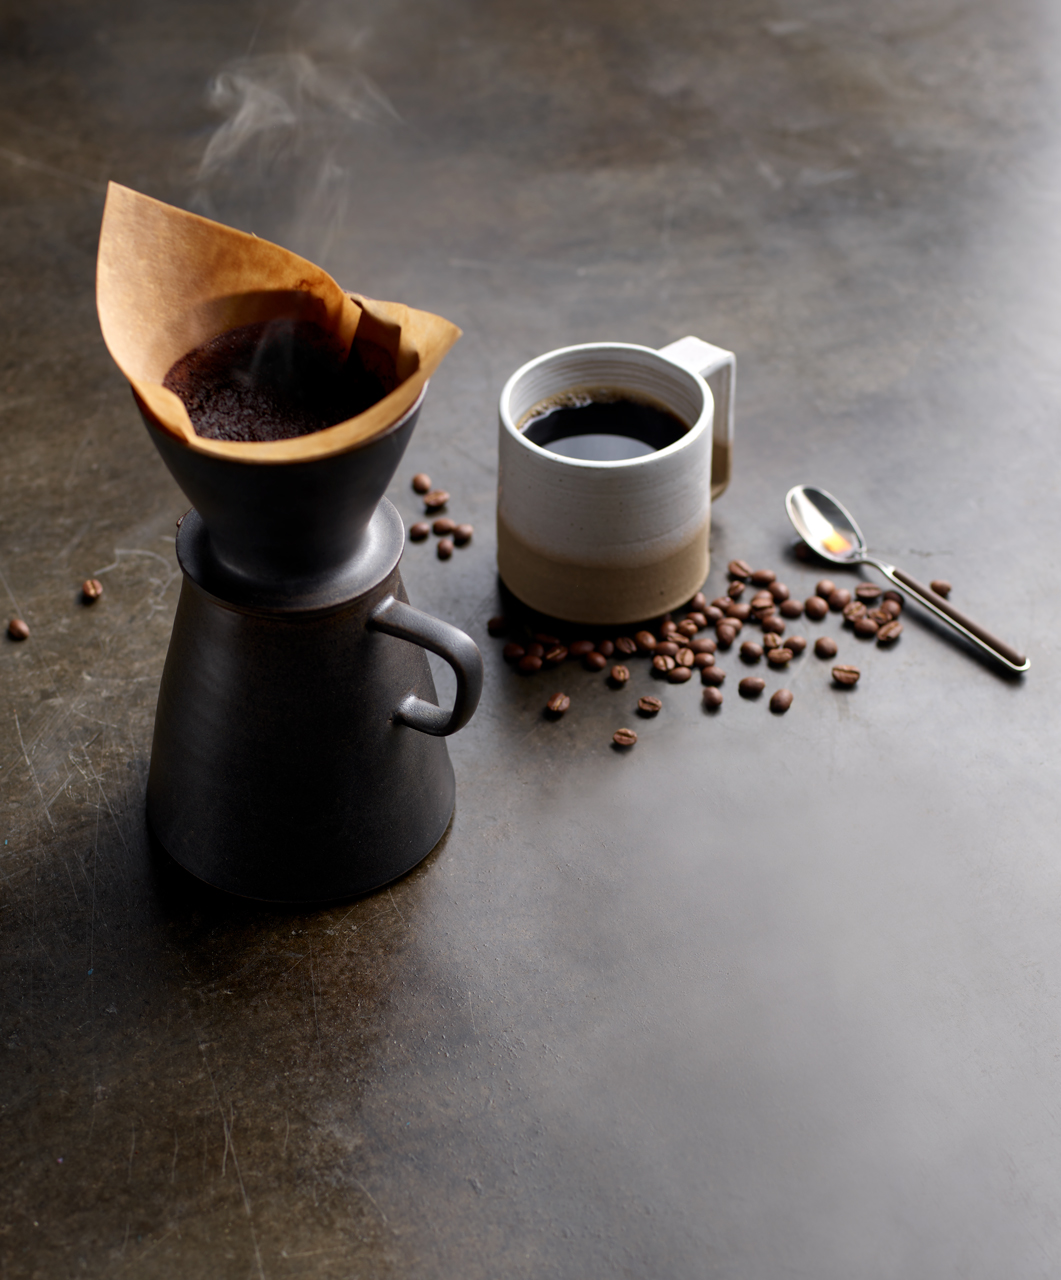 Robyn Valarik San Francisco Food & Drink Stylist - coffee, caffeine, hot, pour-over, beans, hot, steam, mug, filter, still-life, food-photography